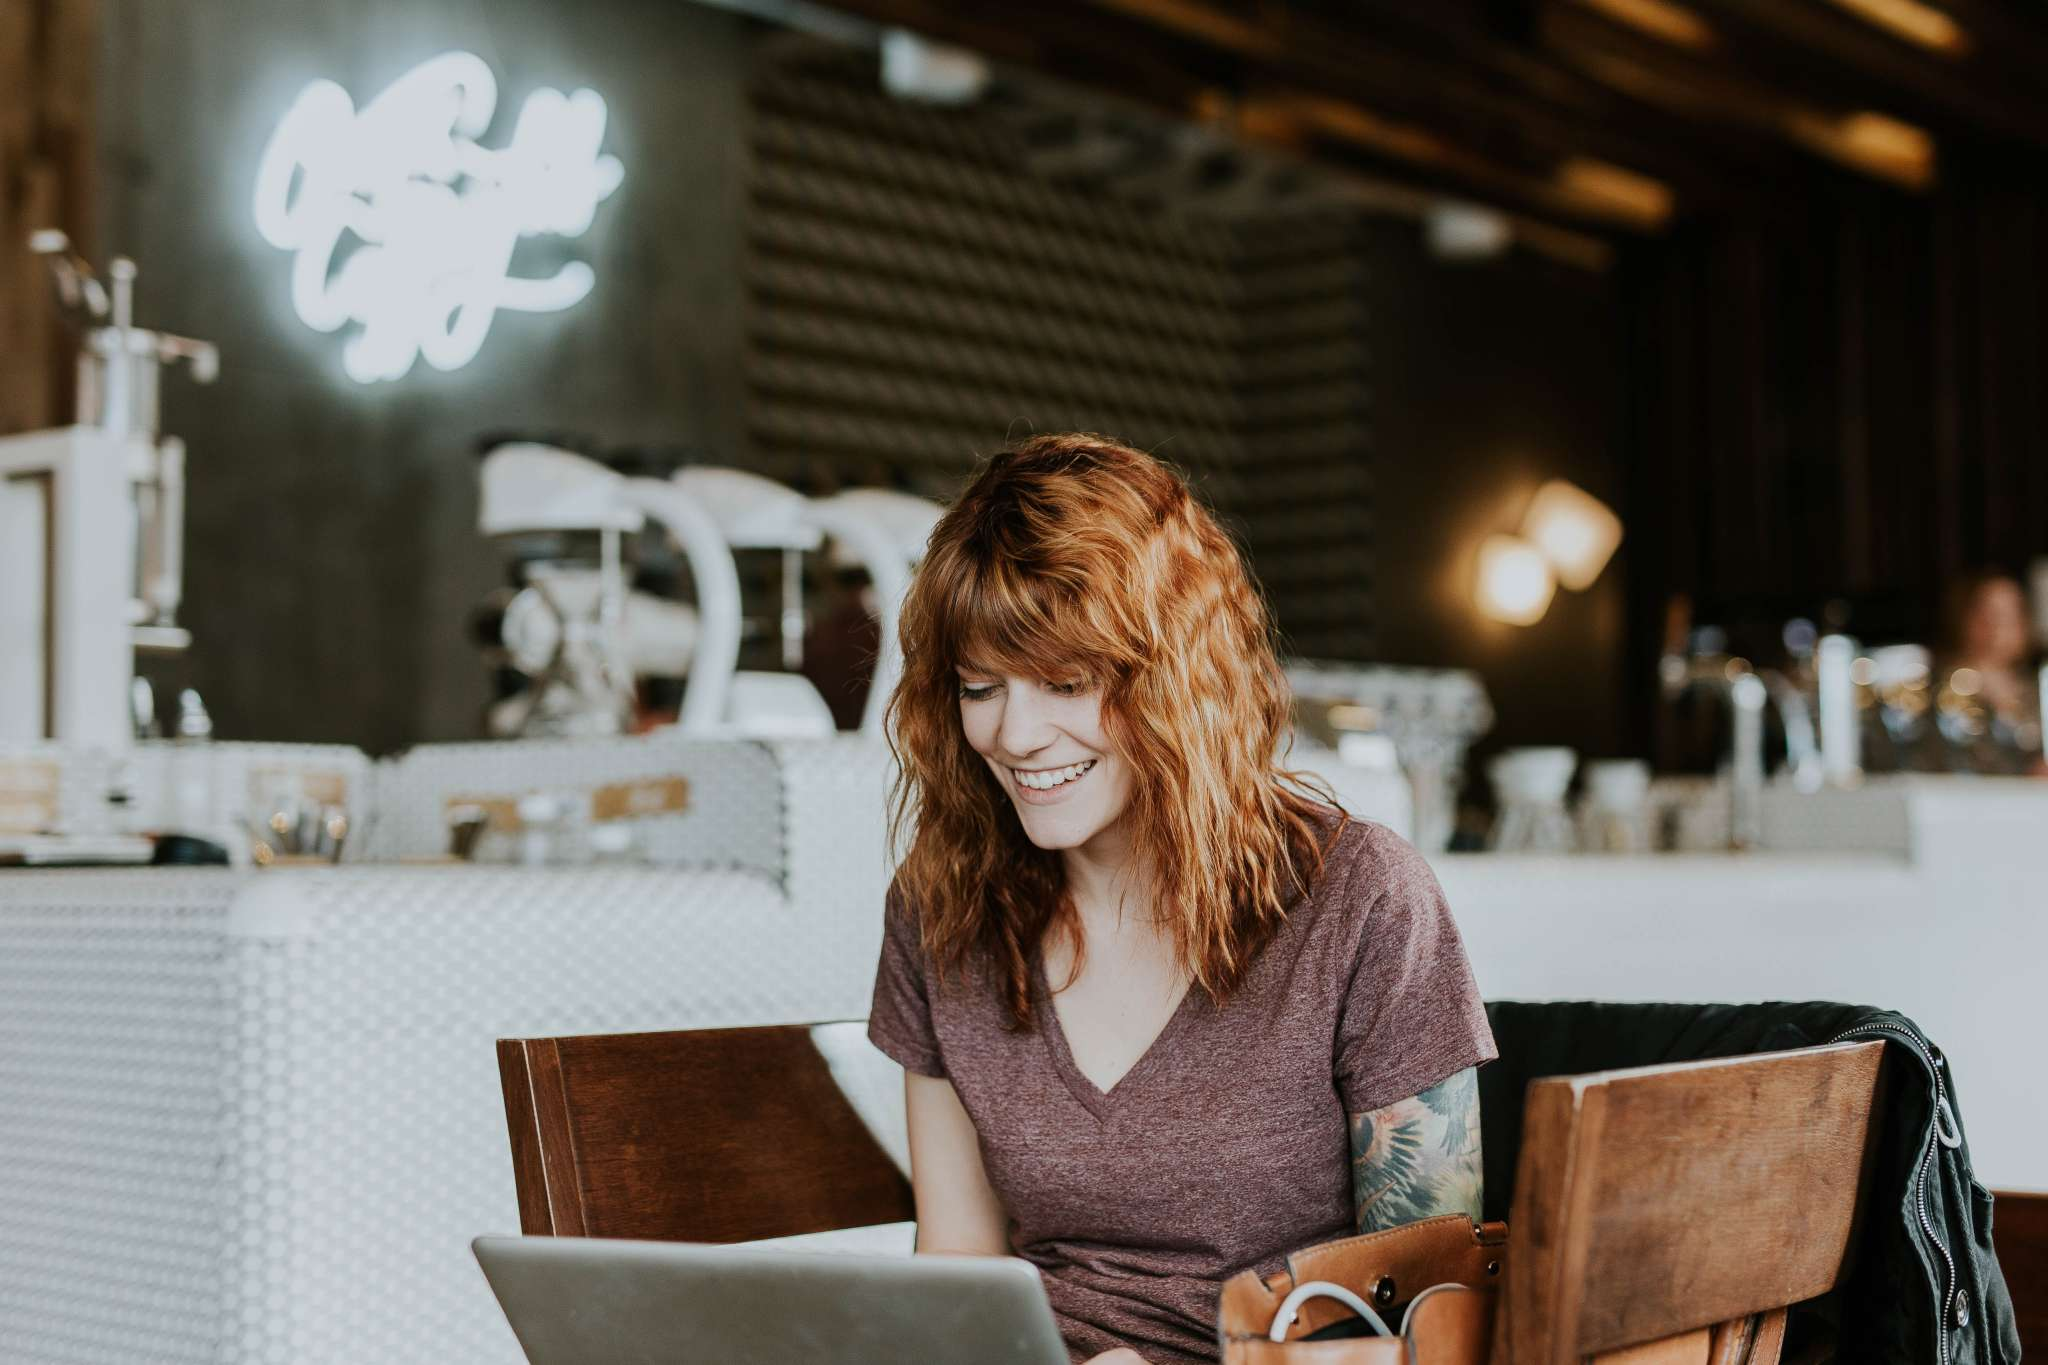 A tattooed woman sitting in a cafe and looking at laptop